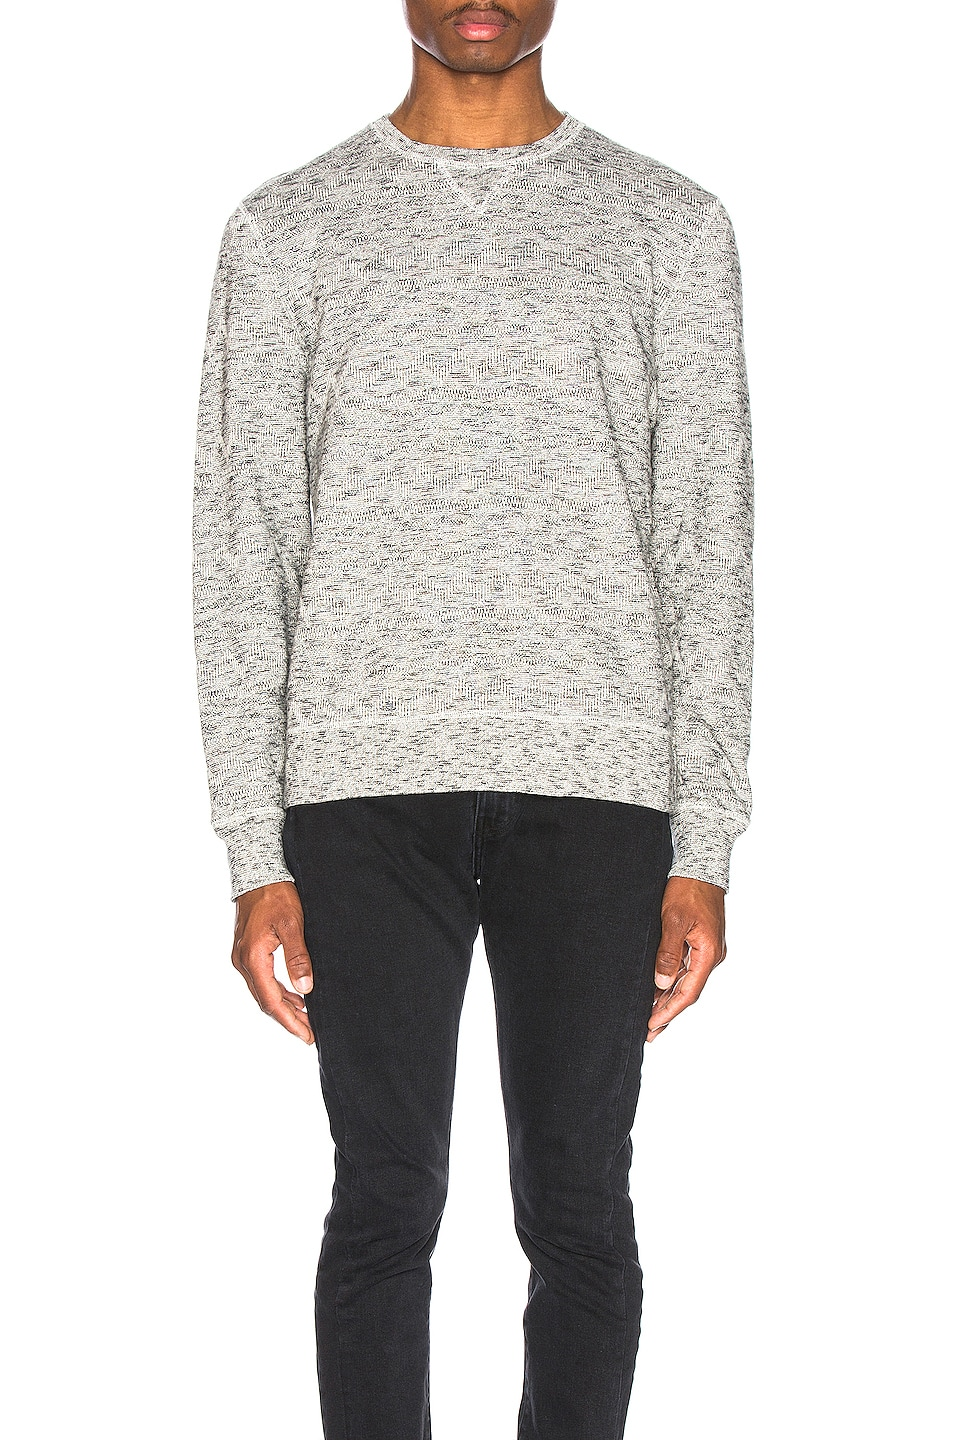 Image 1 of LEVI'S: Made & Crafted Geo Fleece Crewneck in Terry Grey